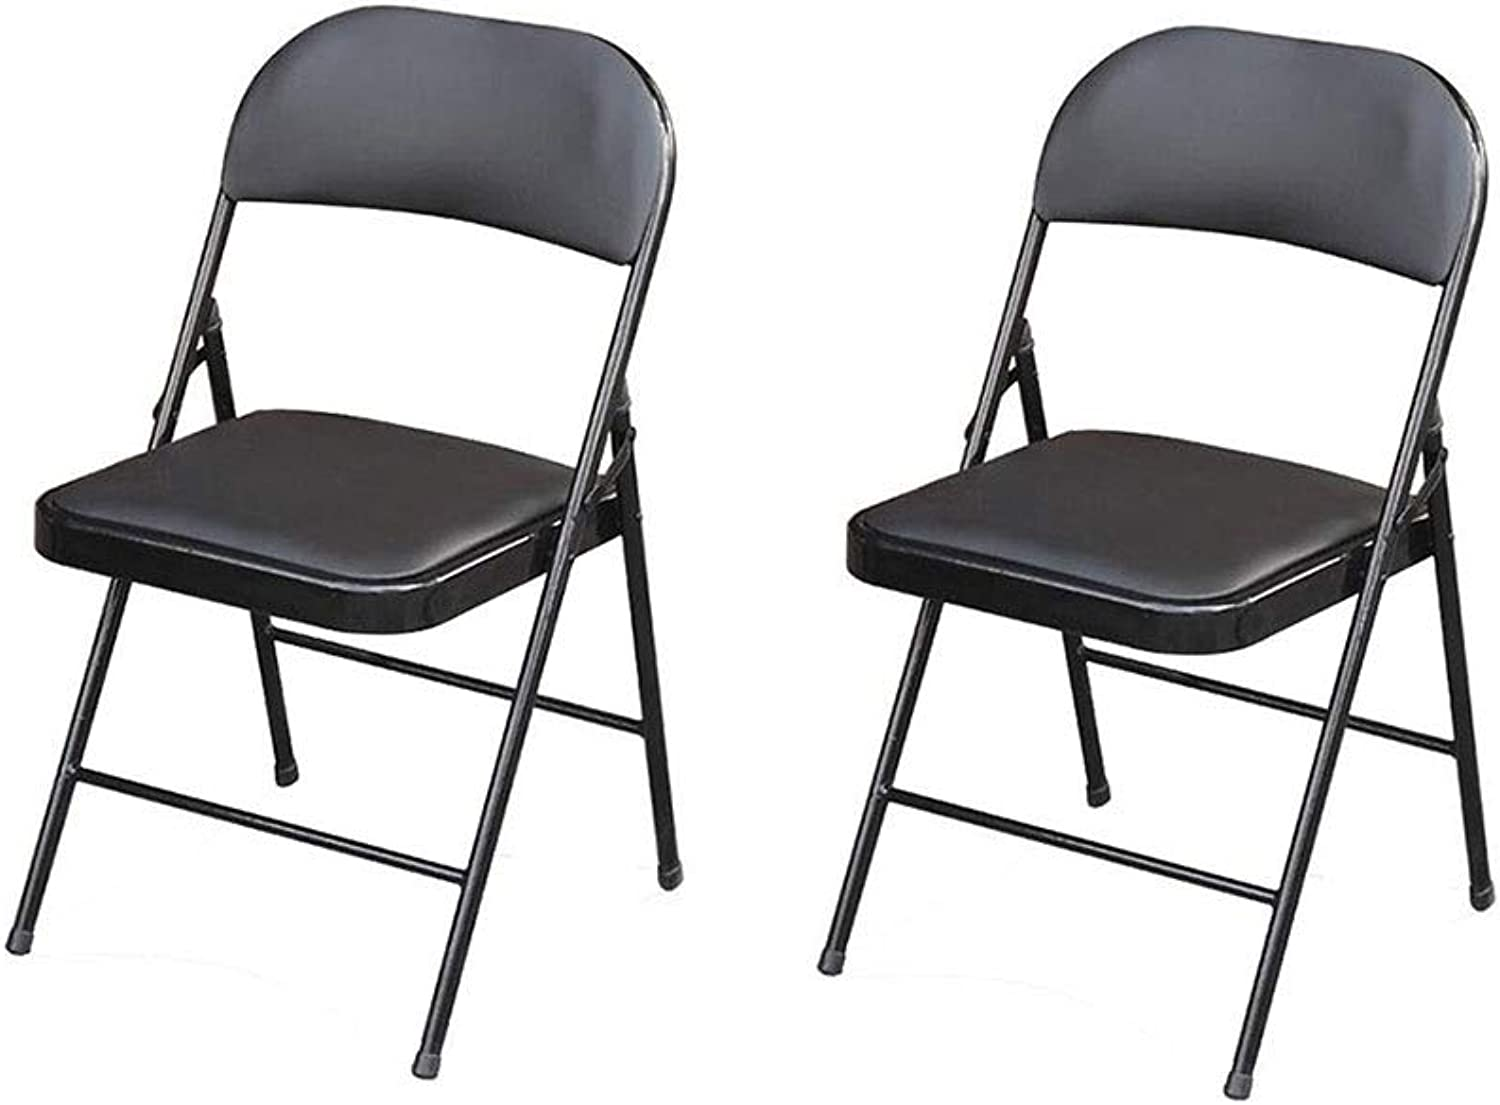 QIQI-LIFE 2 Pack-Faux Leather Metal Folding Chair Office Conference Office Training Computer Chair (color   Black)